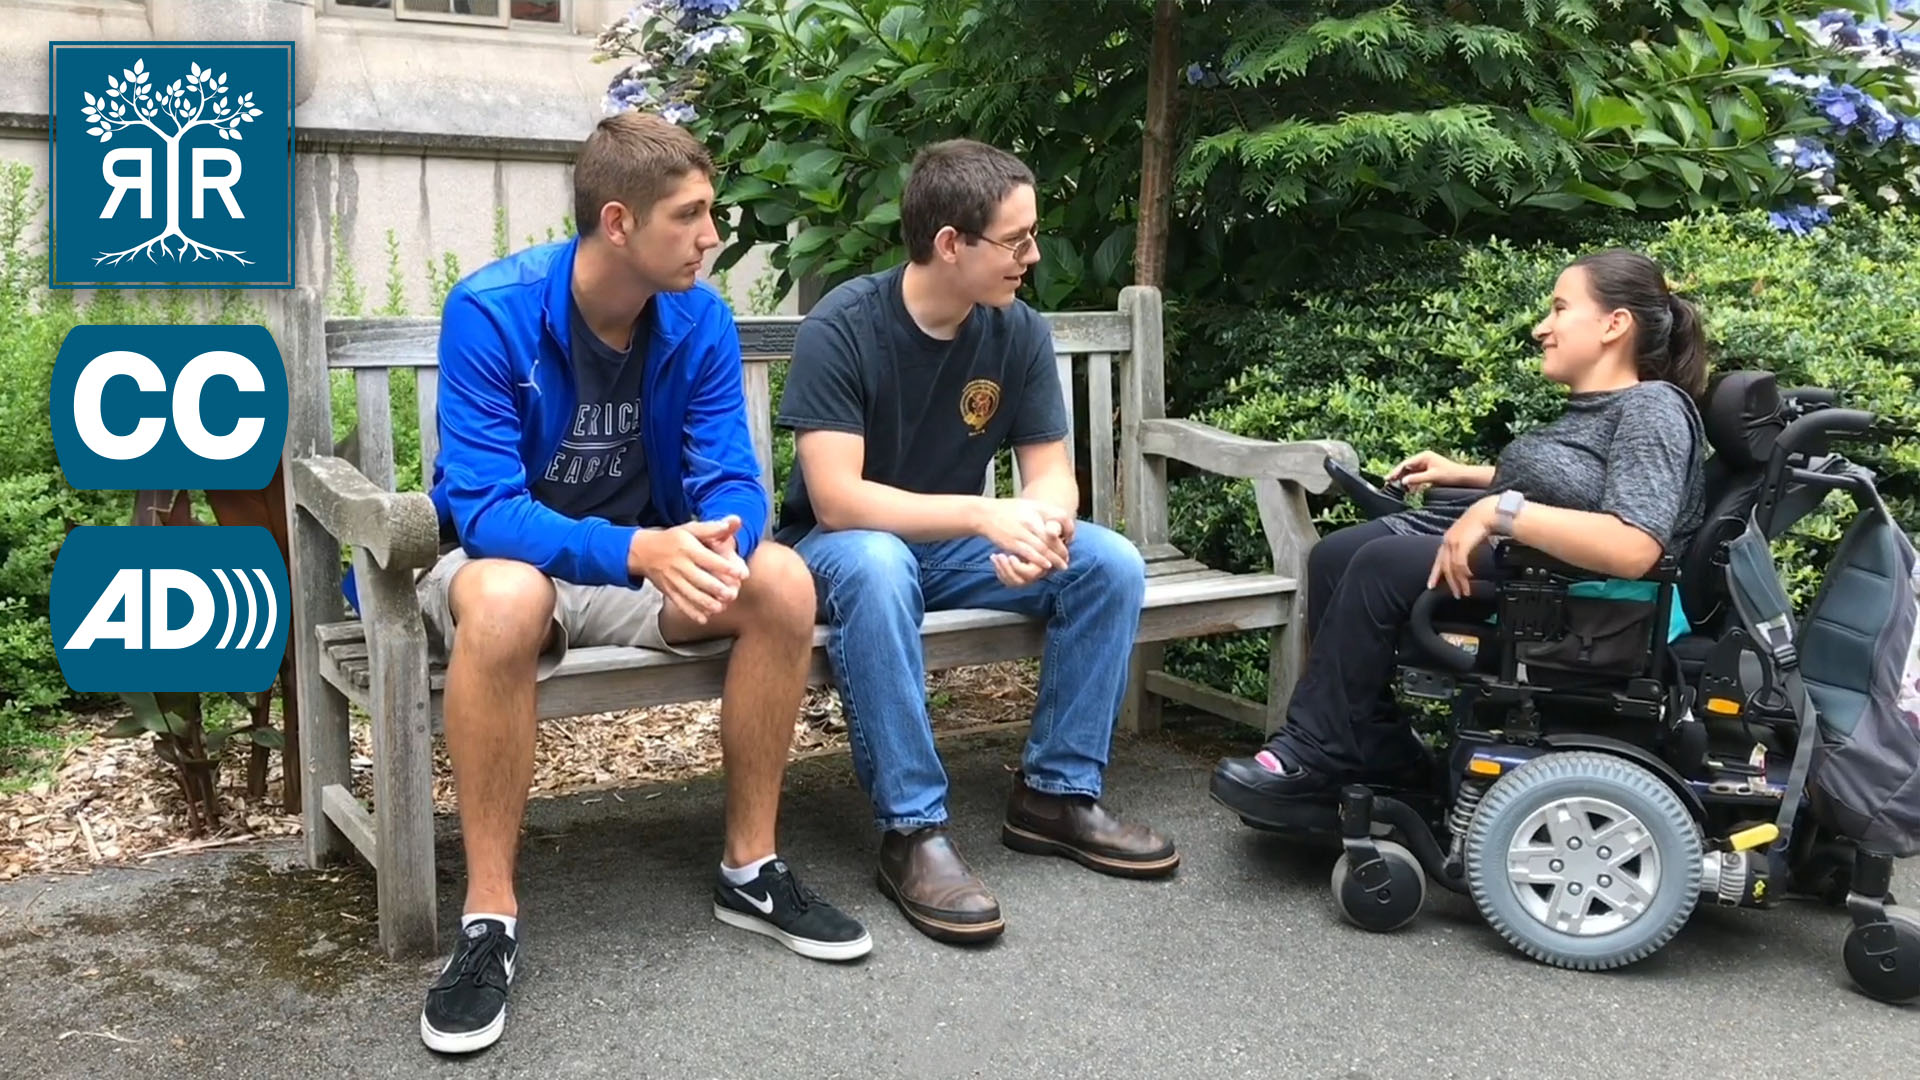 Two students face another who uses a power chair.